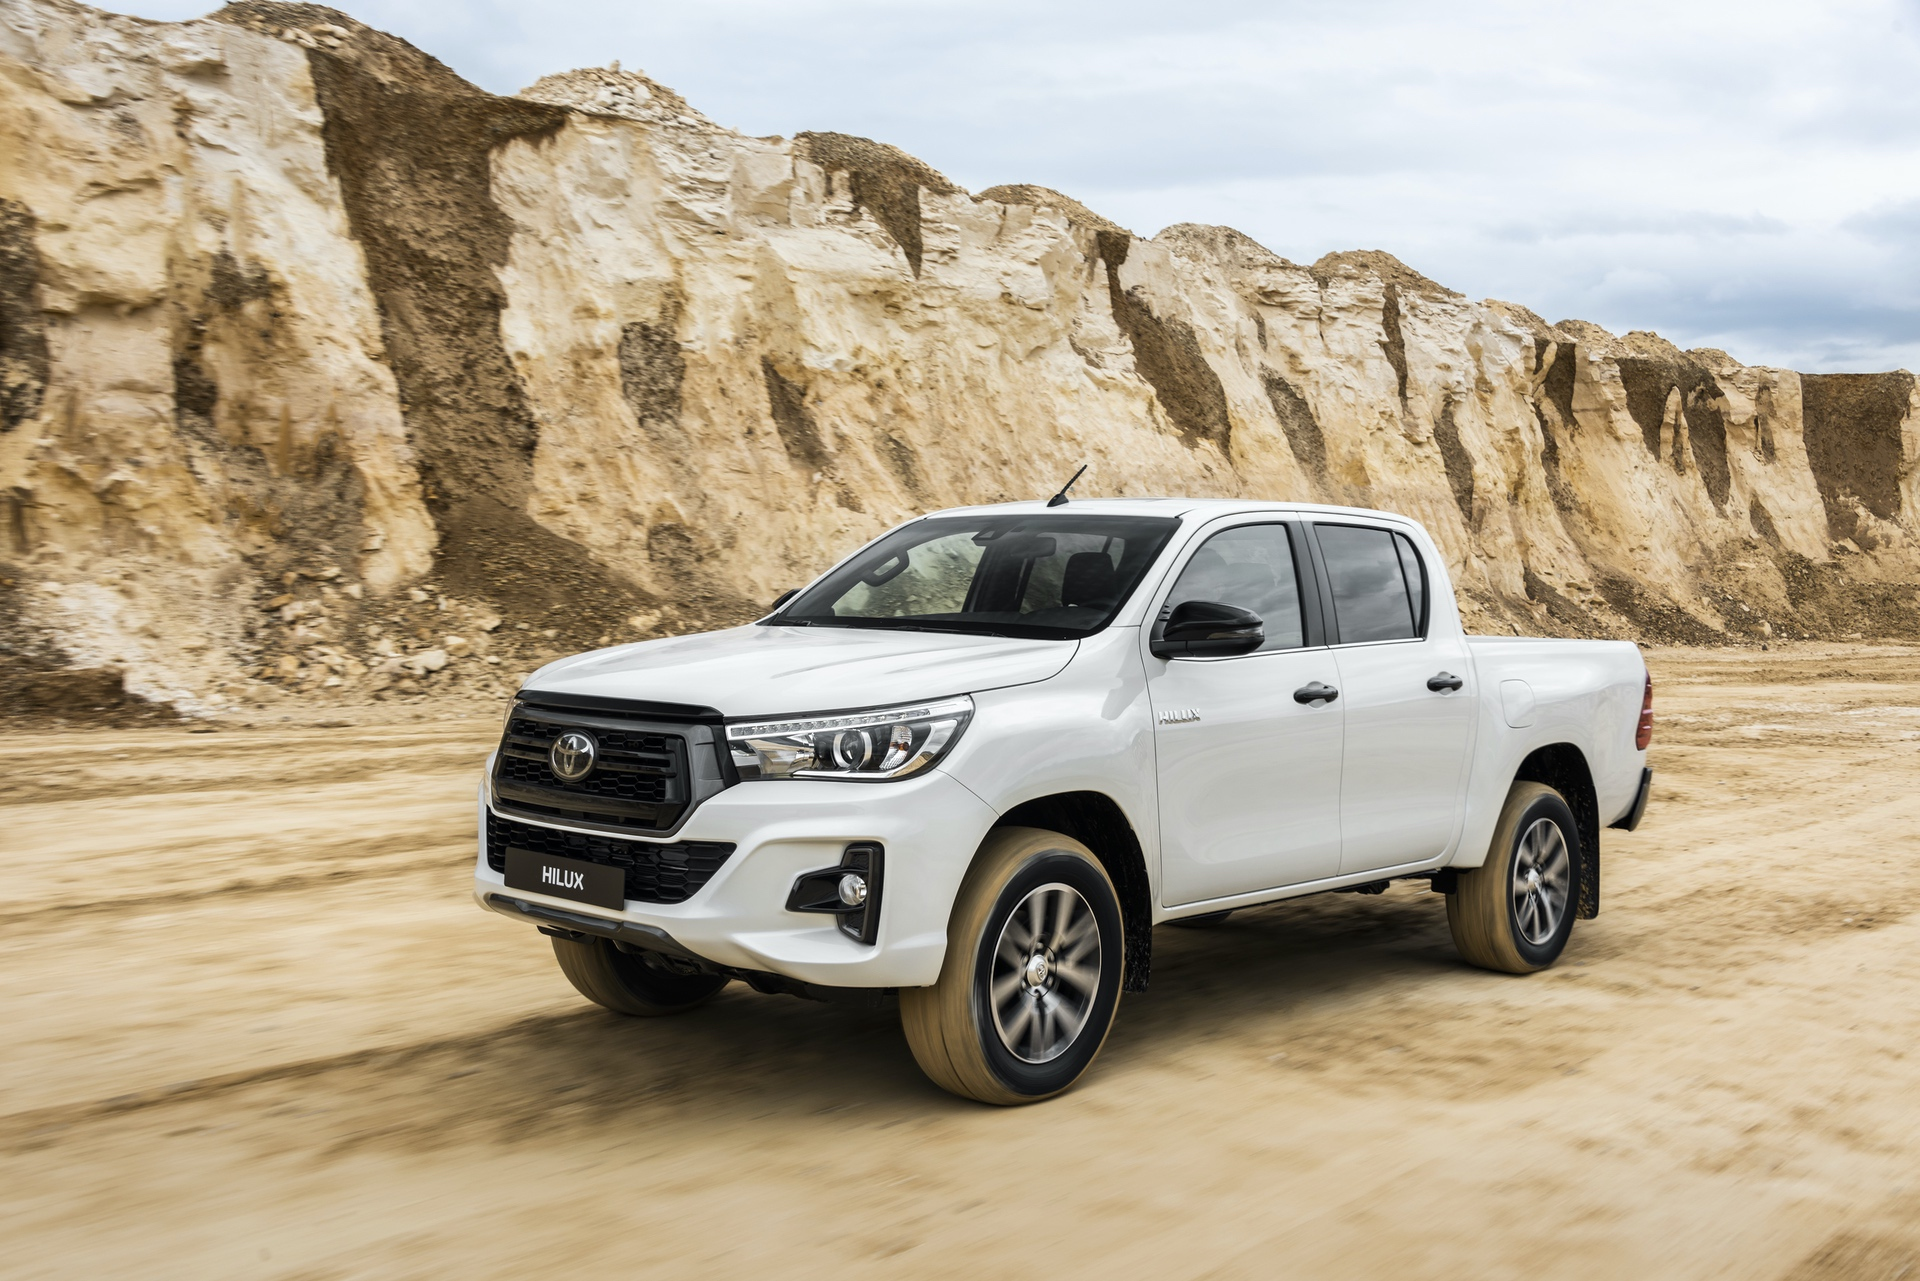 Toyota_Hilux_Special_Edition_0040